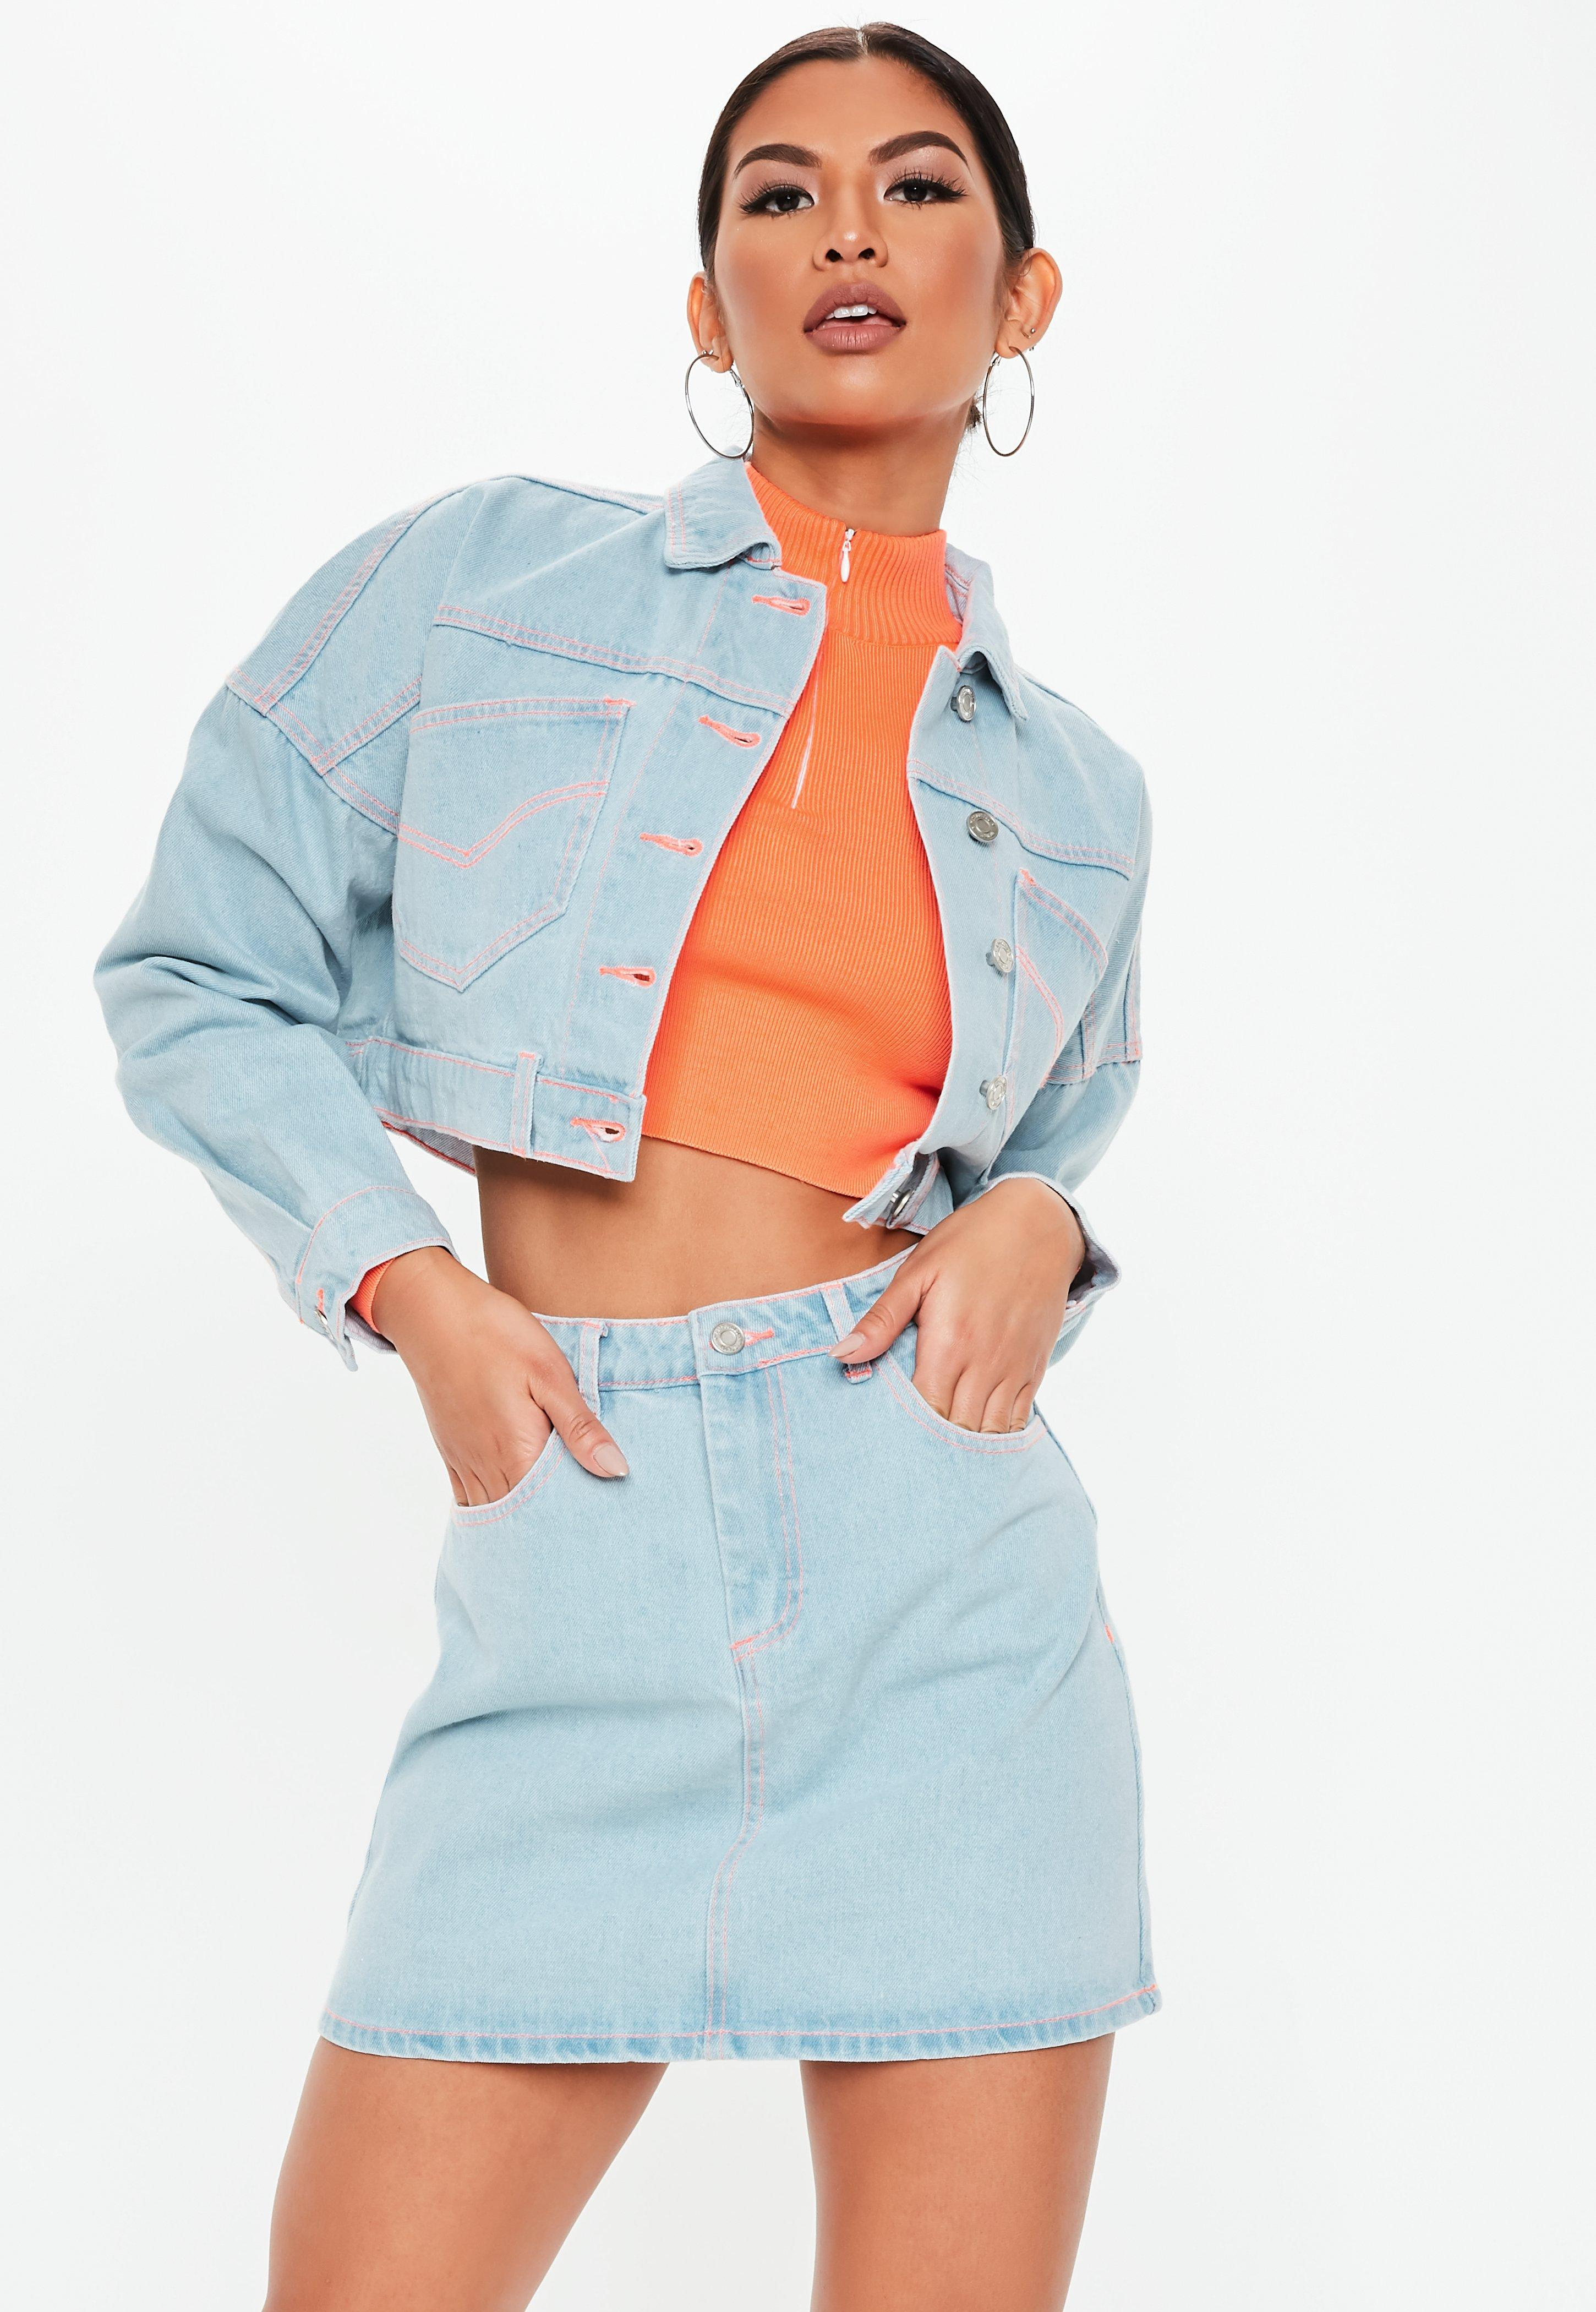 4fba693f270 Denim - Women s Denim Clothing - Denim Jeans   Dress - Missguided